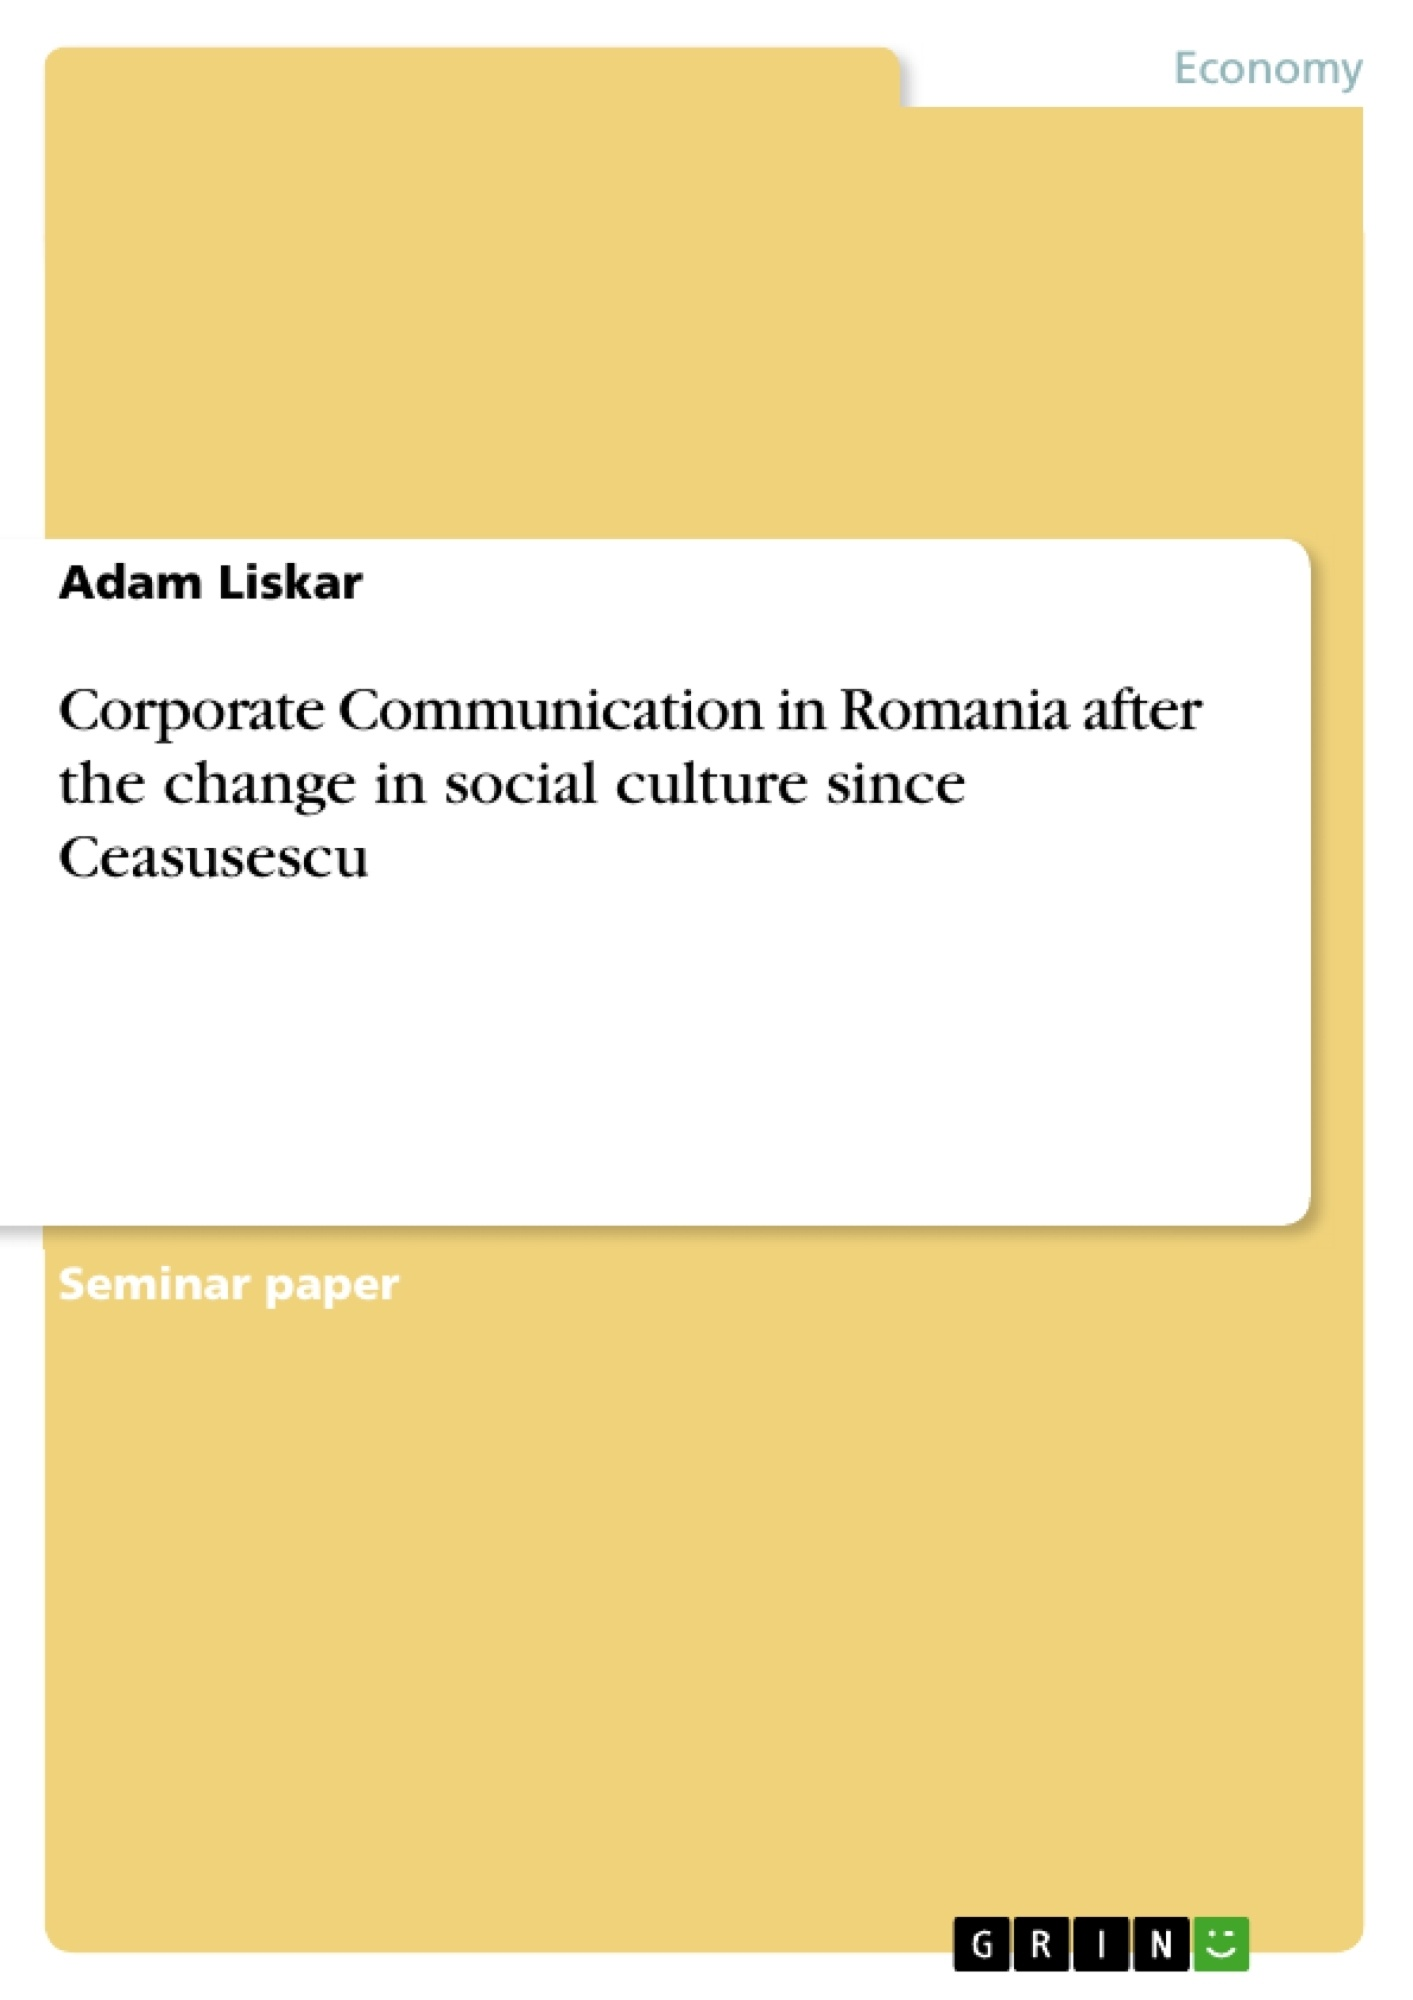 Title: Corporate Communication in Romania after the change in social culture since Ceasusescu